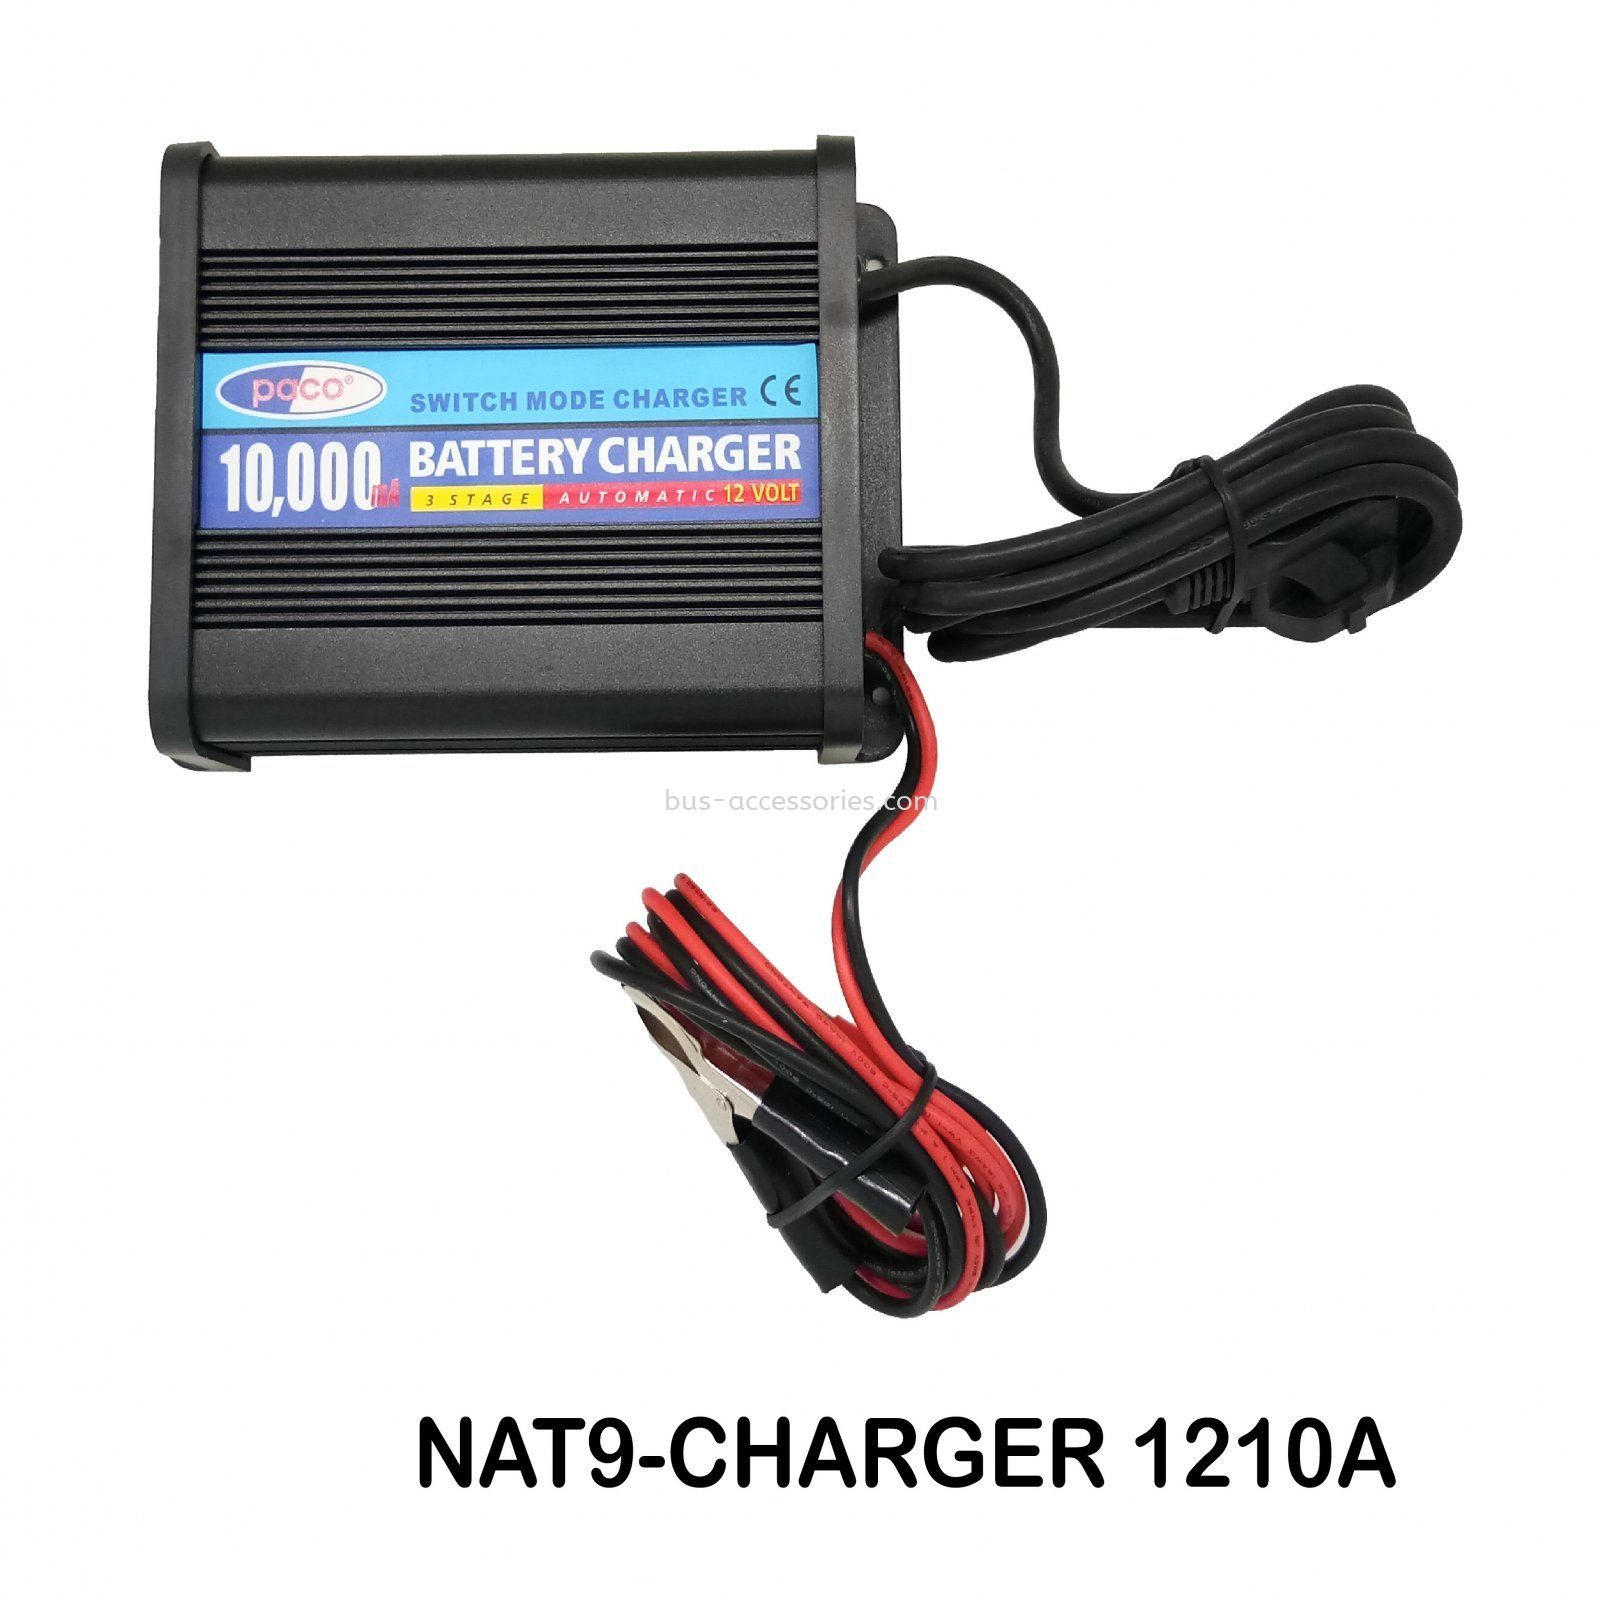 BATTERY CHARGER 12V 10,000W